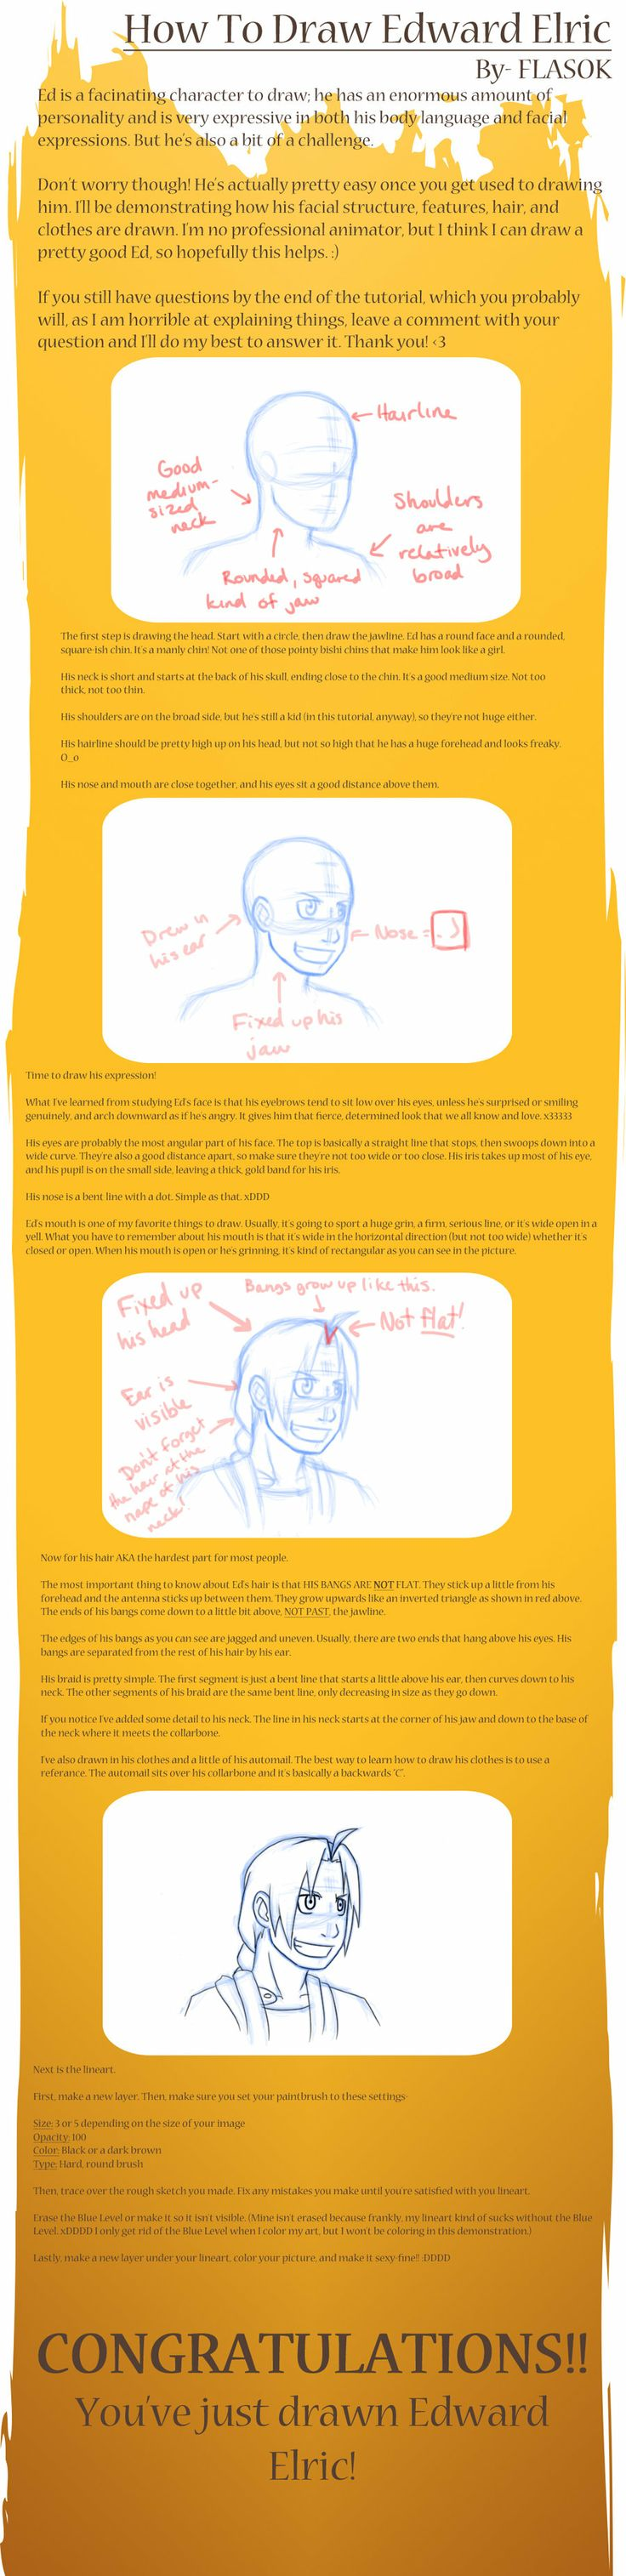 best images about art and drawing perspective xddddddd just wanted to make a tutorial for some reason i dunno why xddddddddd i own nothiiiiiiiiiiiiiiiiing how to draw ed tutorial